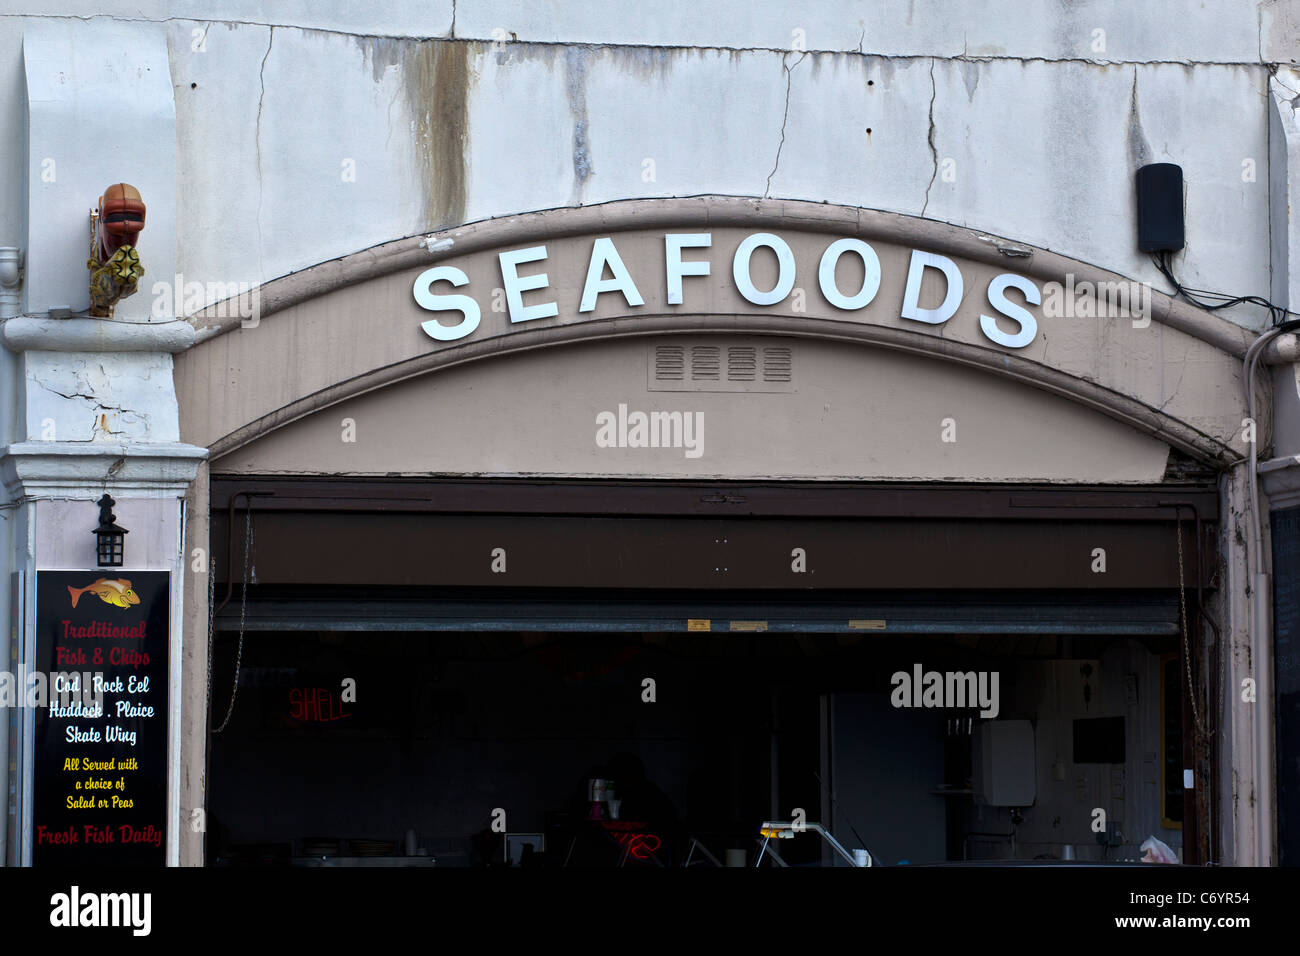 Seafood Outlet High Resolution Stock ...